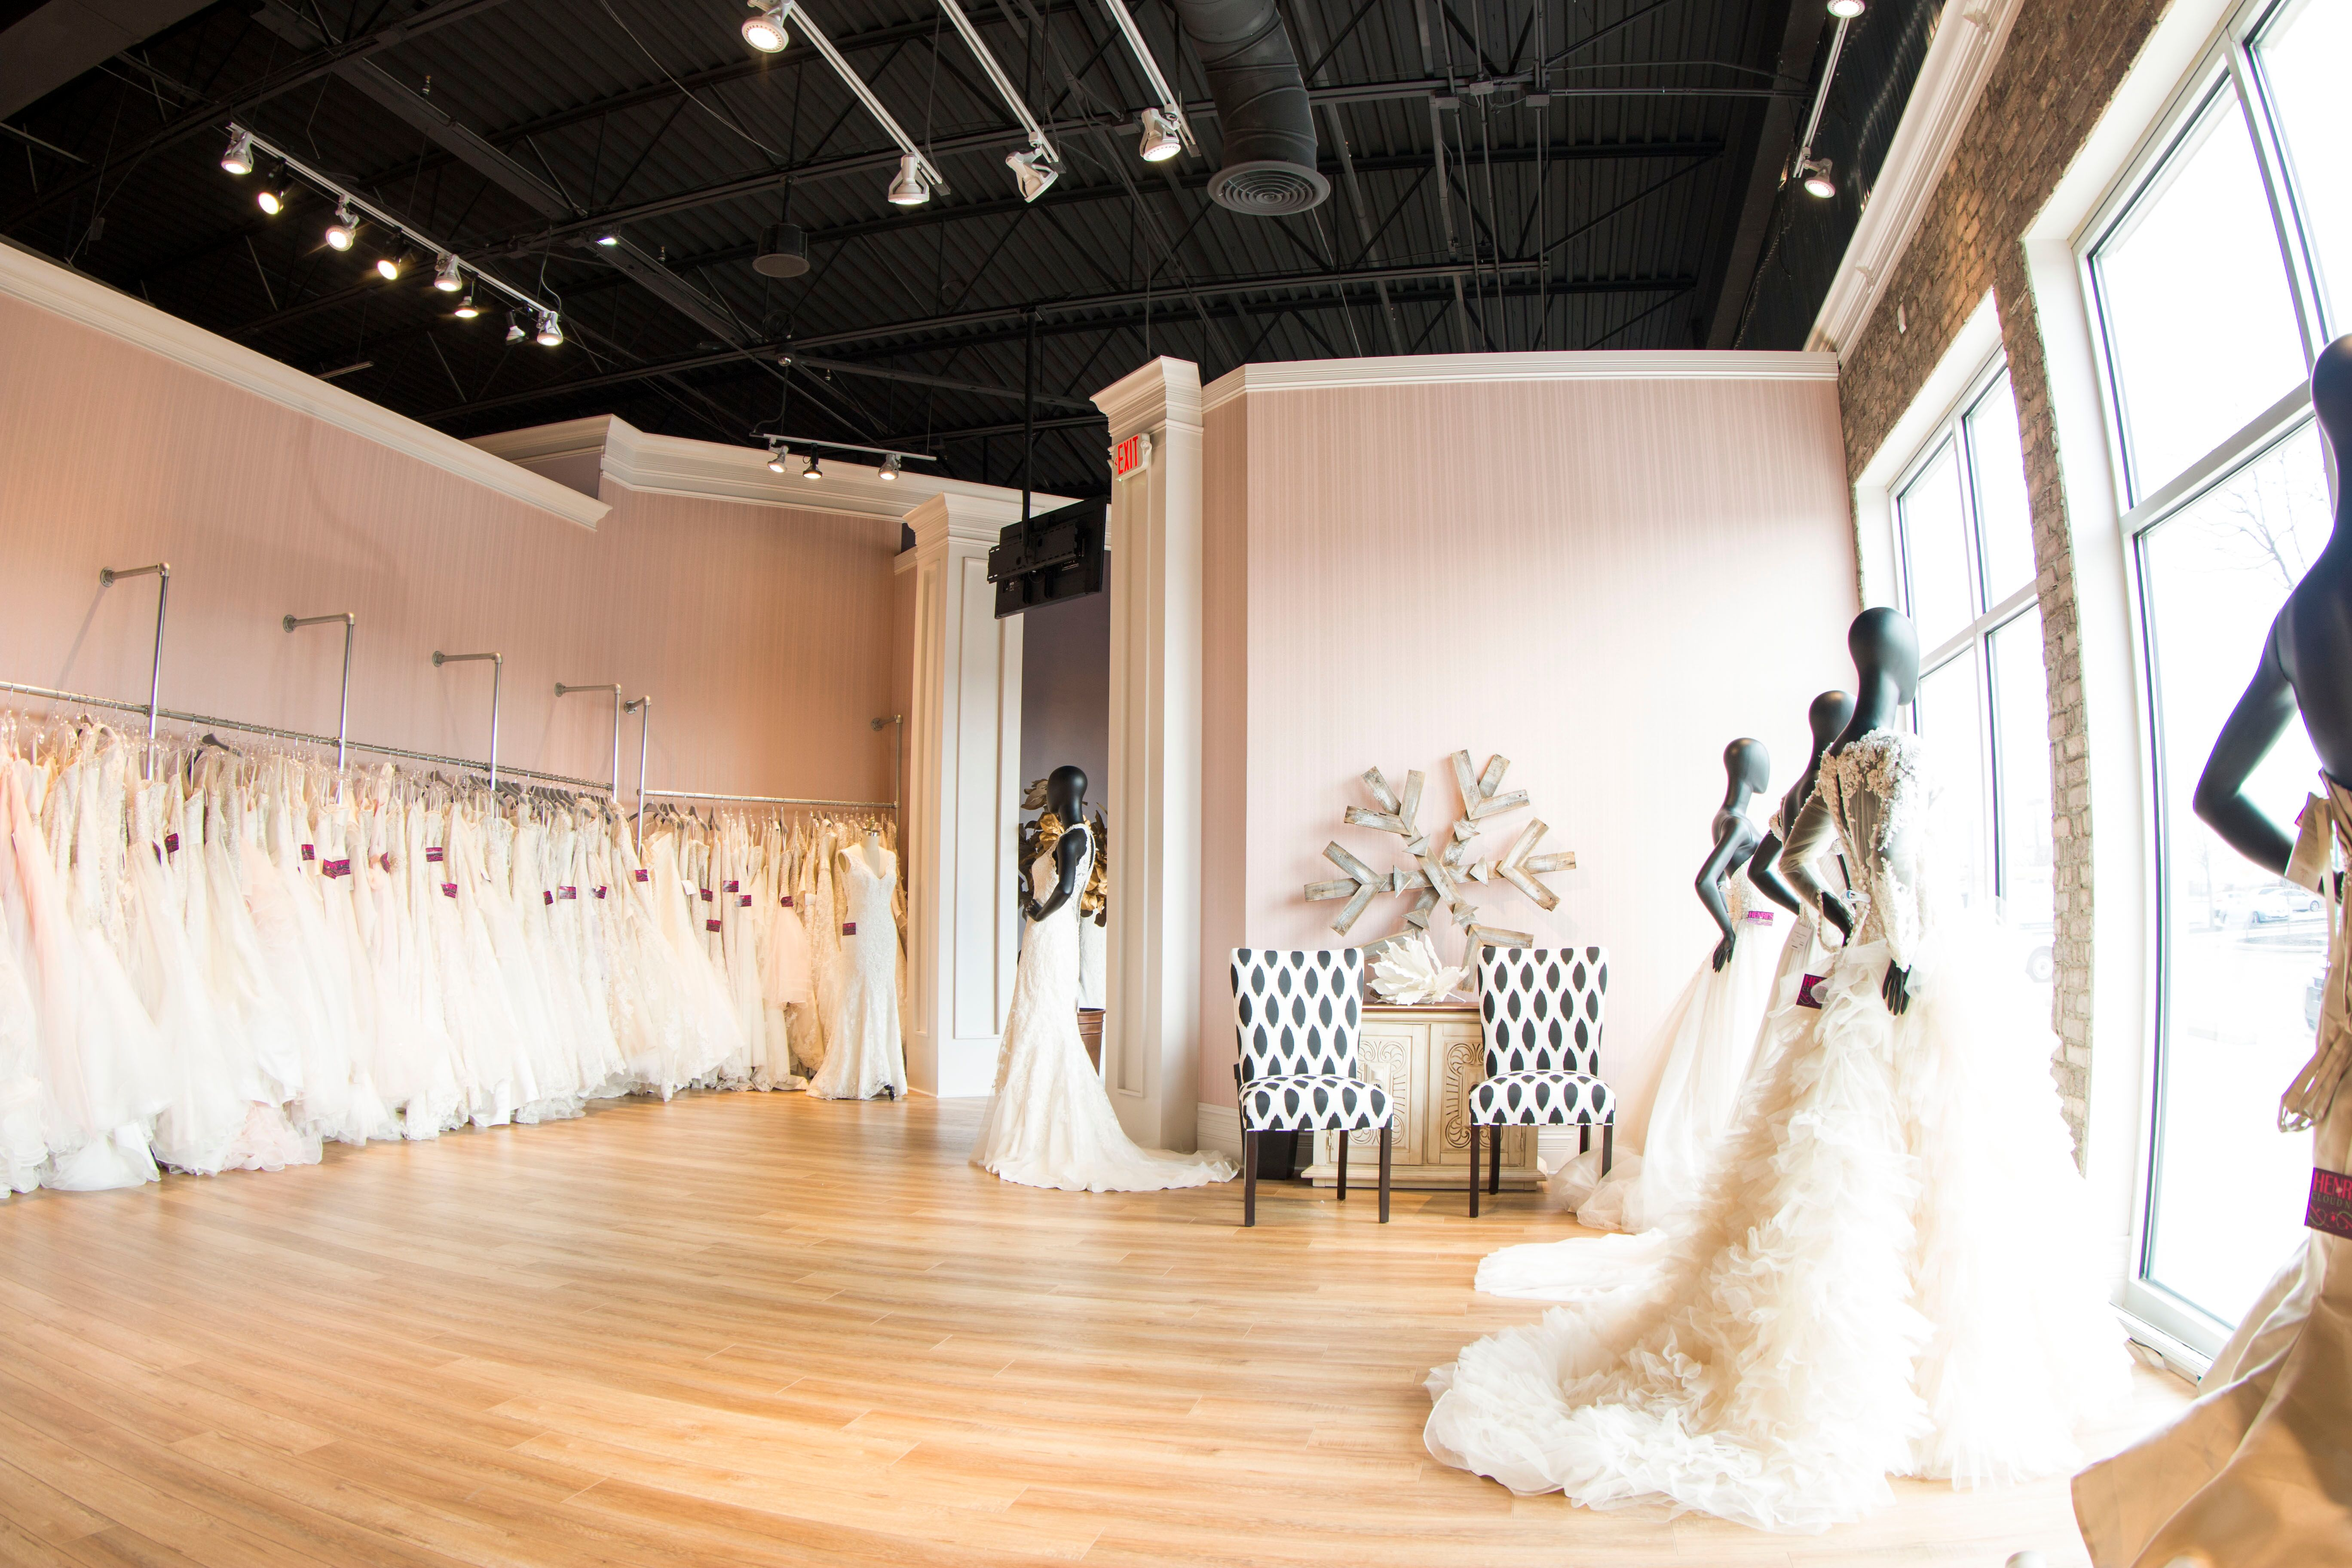 Bridal Salons in Columbus, OH - The Knot